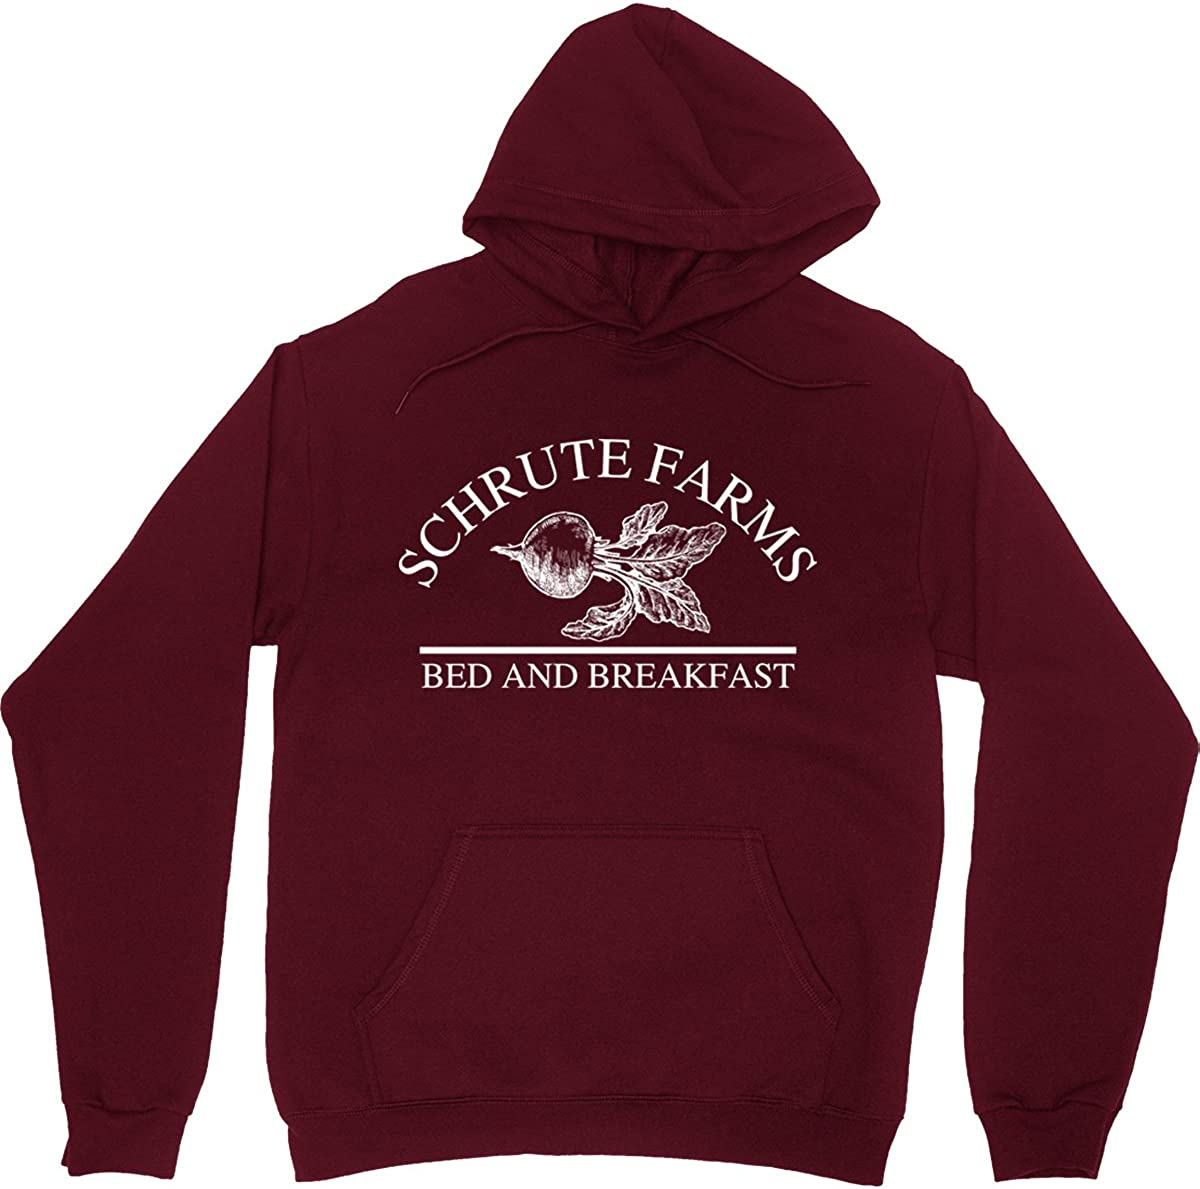 Schrute Farms Beets Bed and Breakfast Hooded Sweatshirt Sweater Pullover - Unisex Hoodie